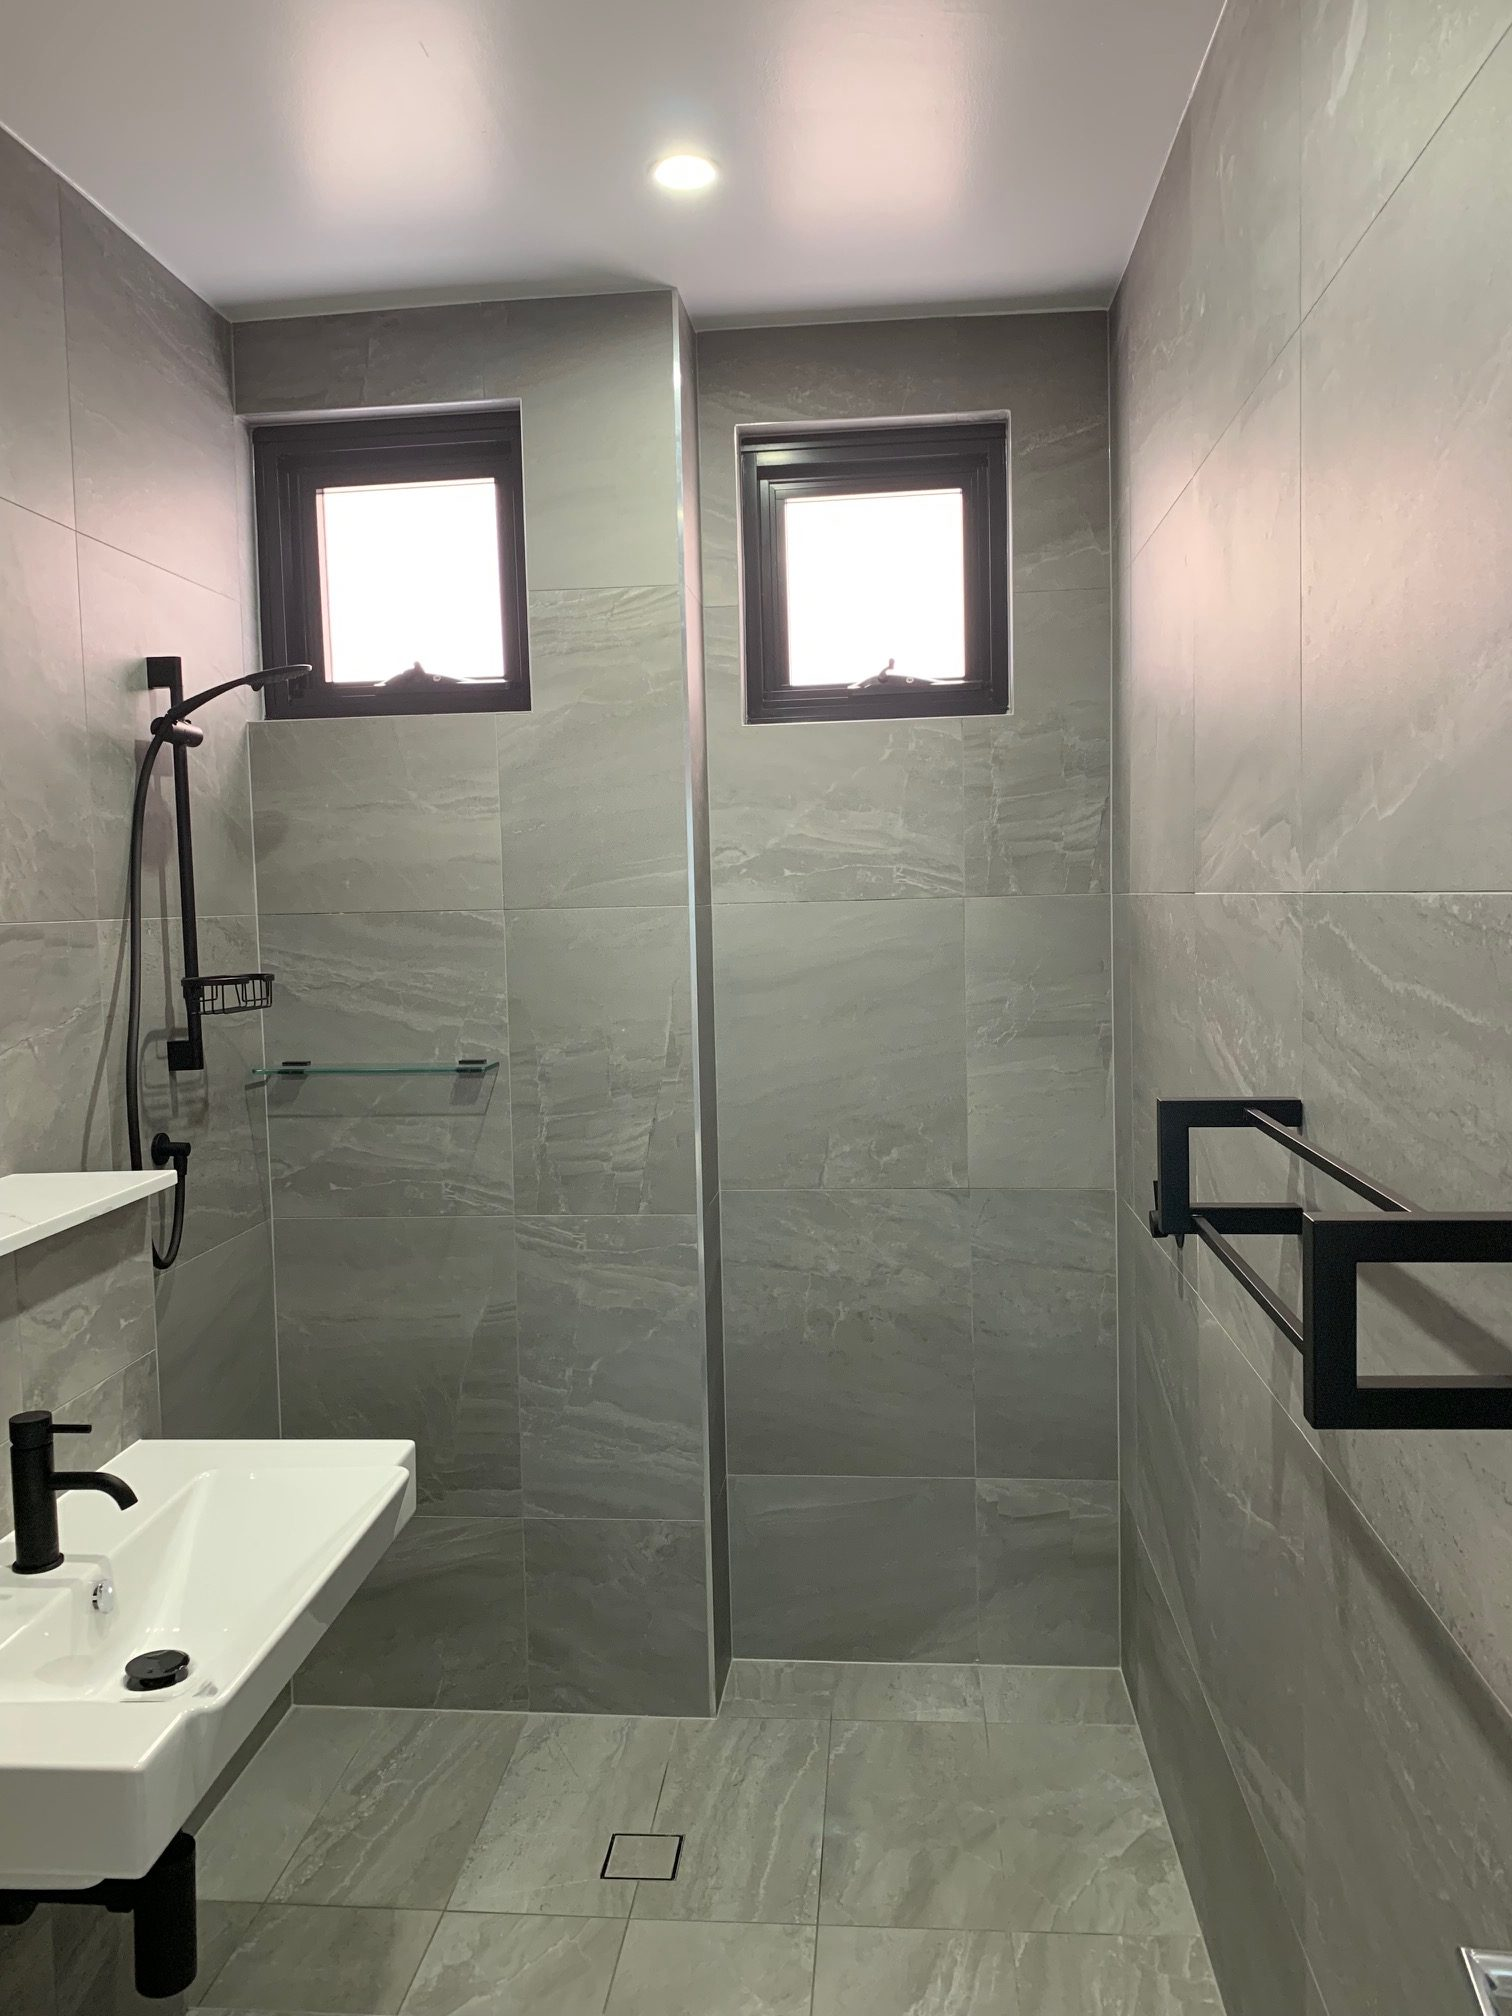 Bathroom shower with Warmtech Inscreed heating system